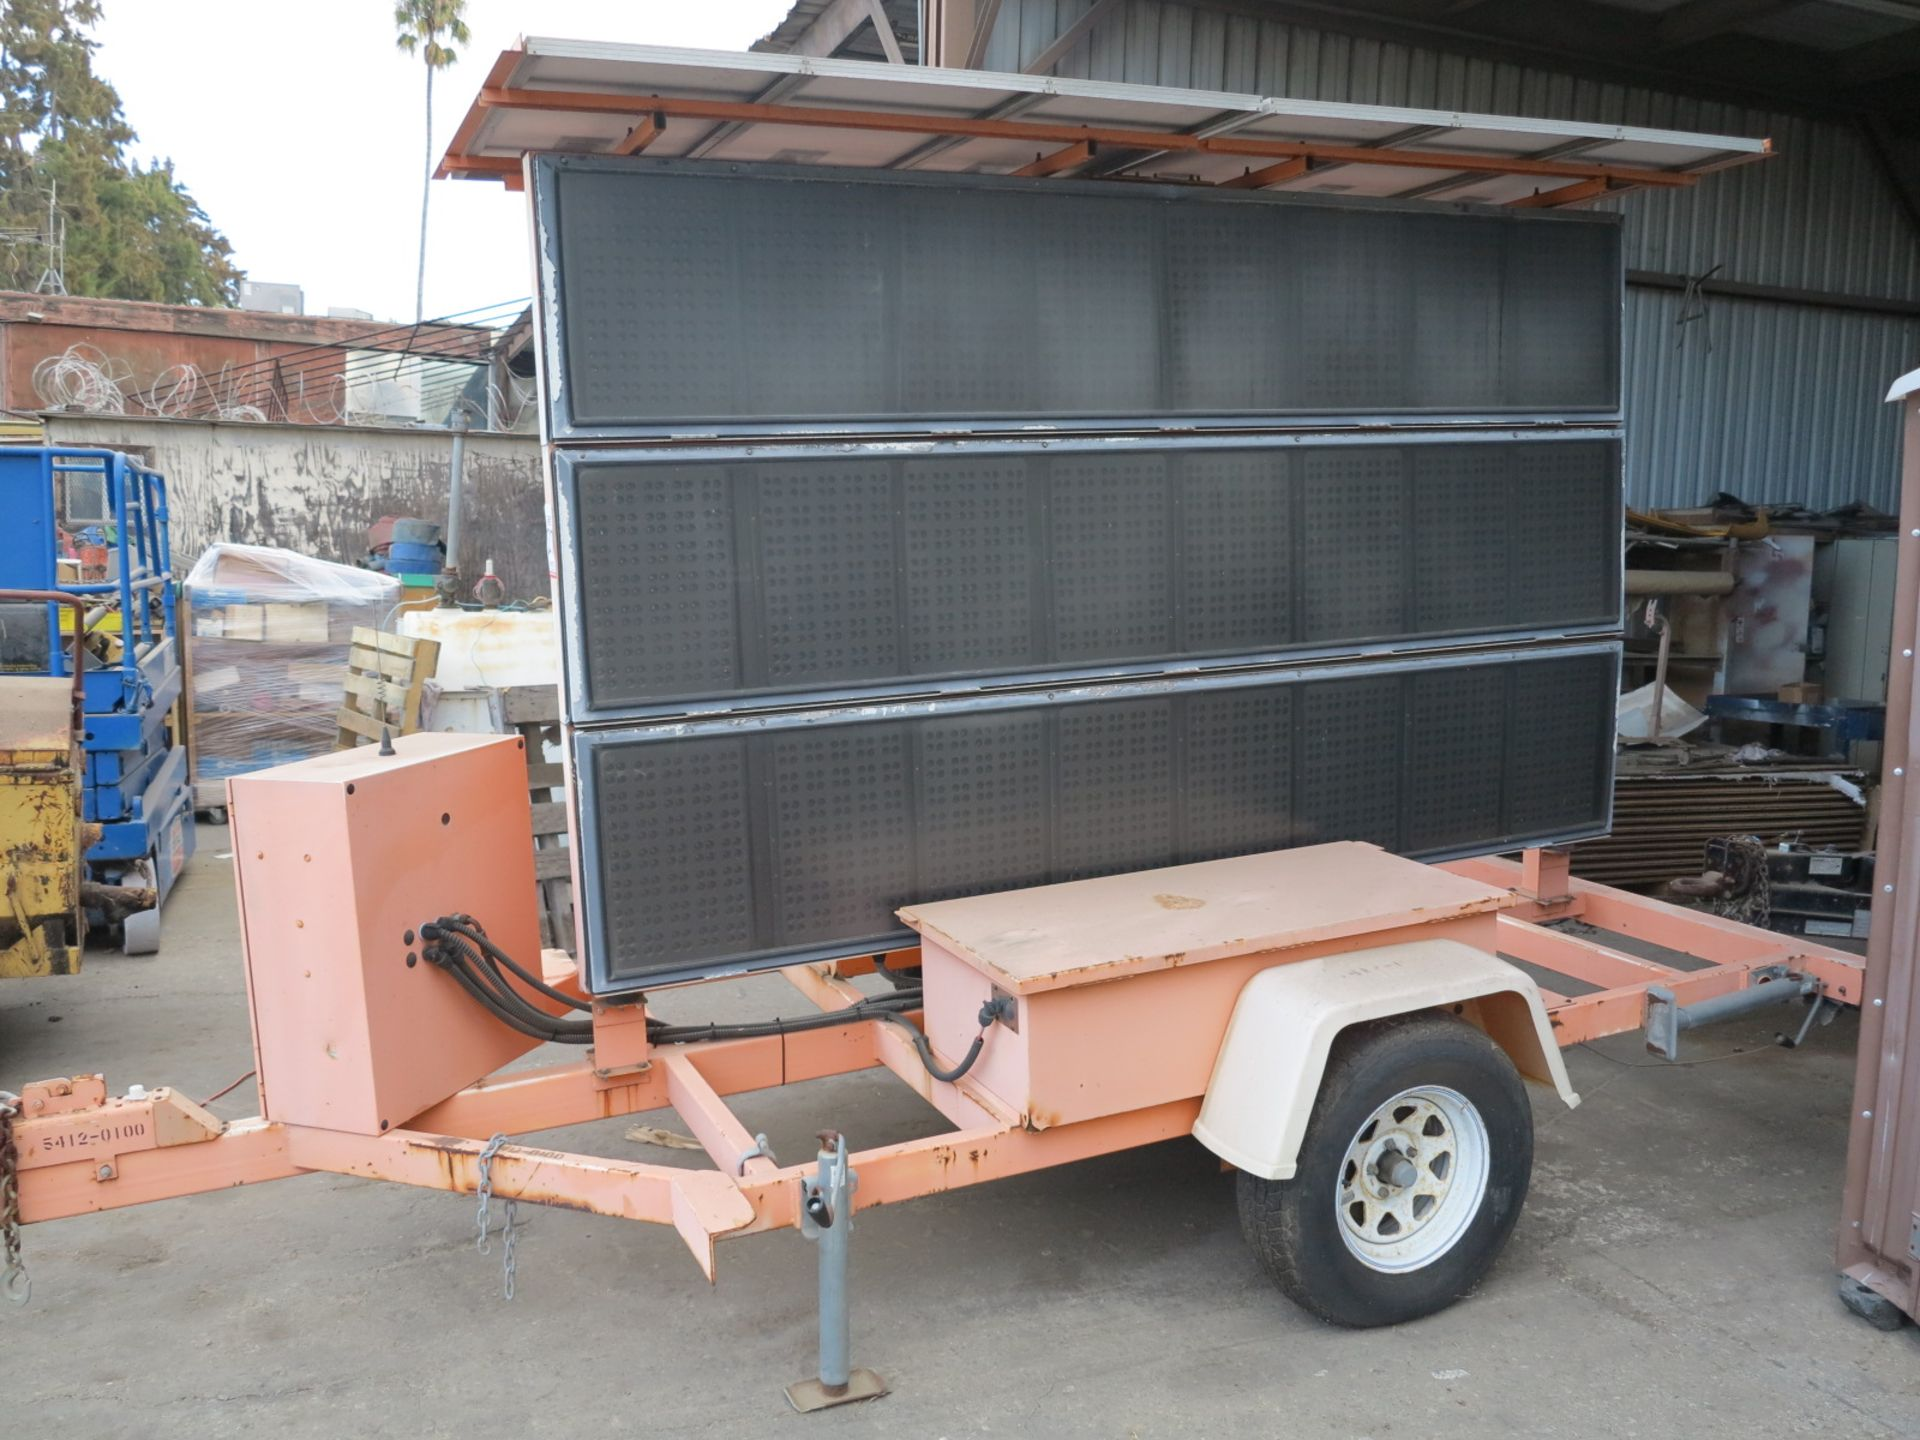 Lot 27 - SOLAR TRAFFIC CONTROL SIGN TRAILER MOUNTED, NO BATTERIES